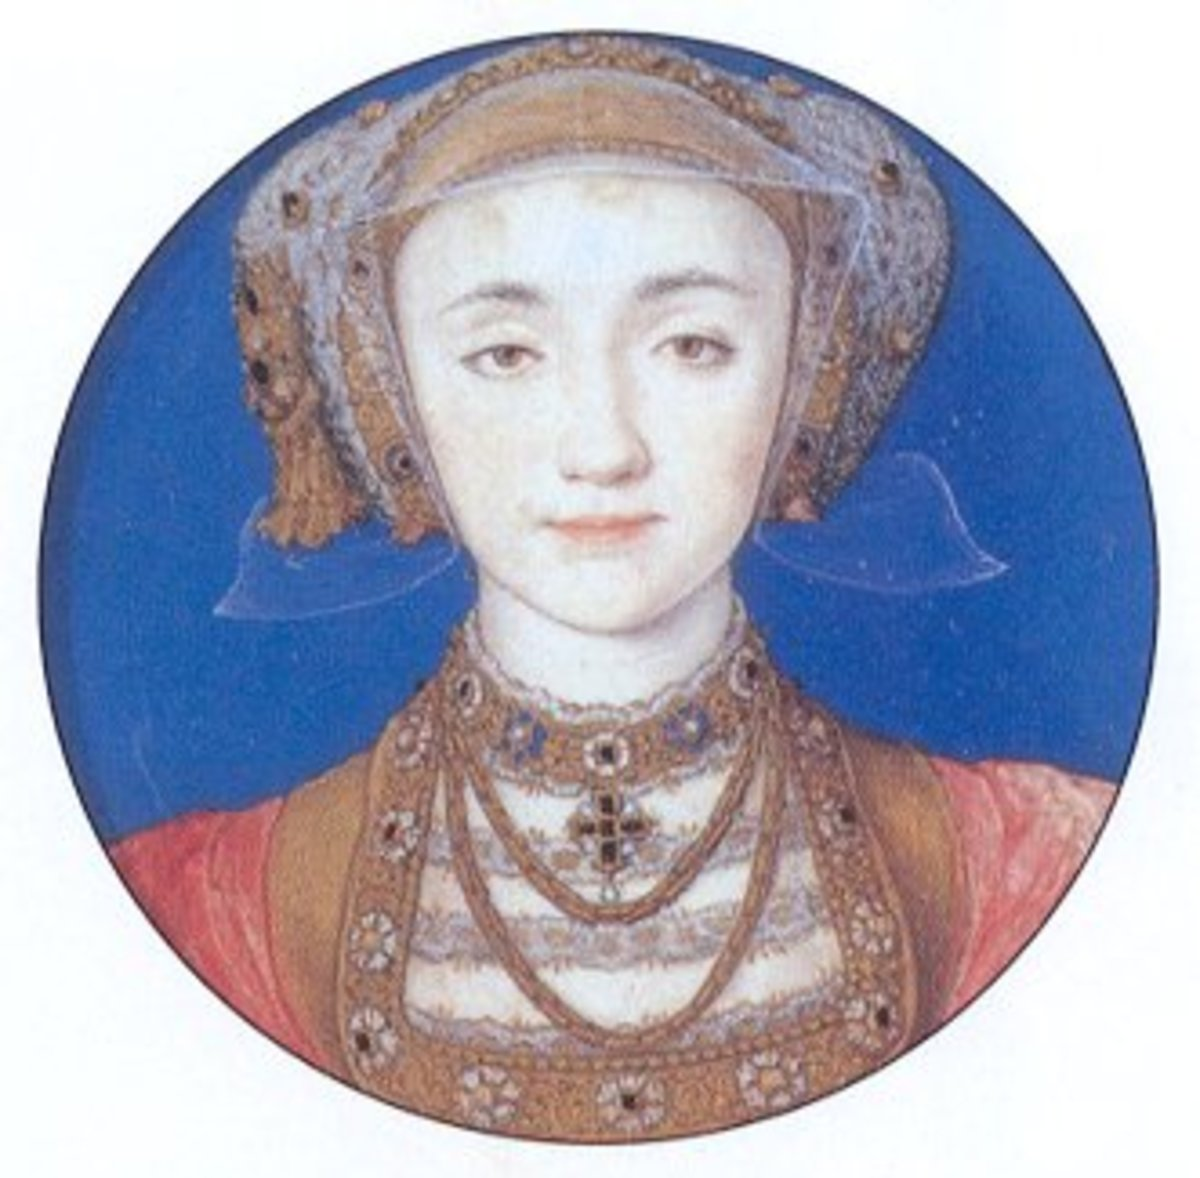 There is no evidence to support Henry VIII and Anne of Cleves has a relationship after their marriage was annulled.